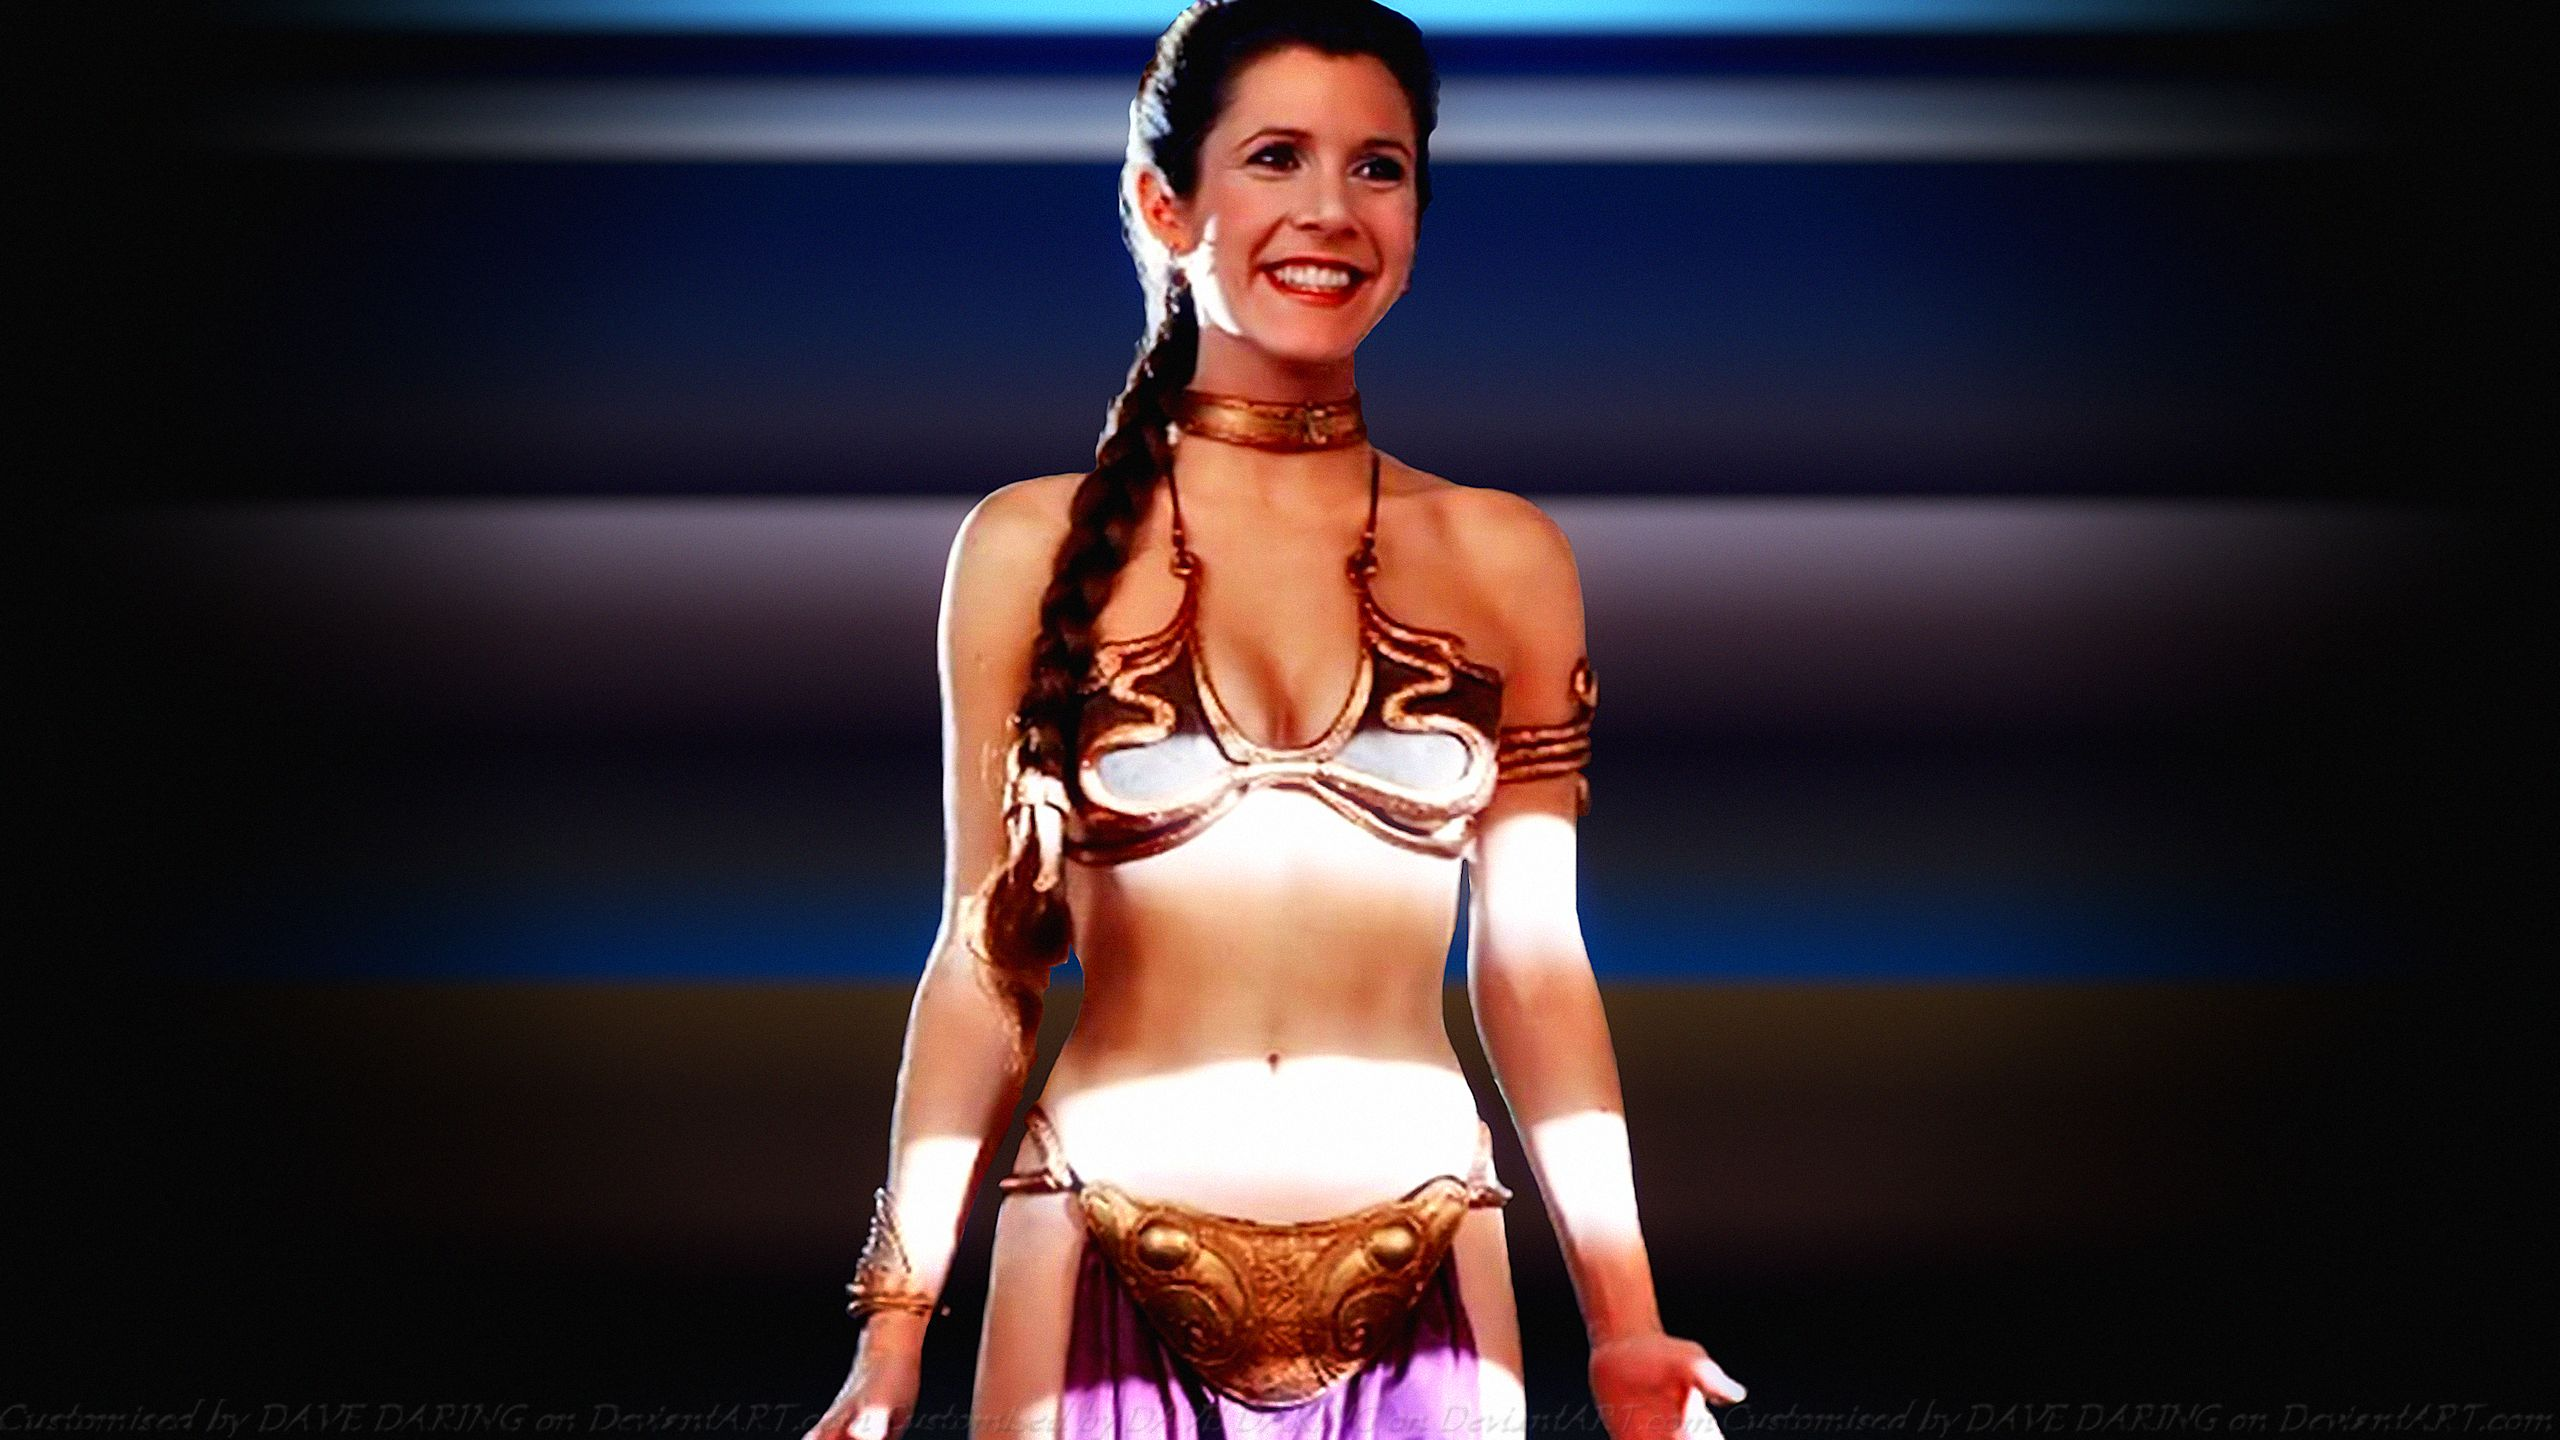 Carrie Fisher Slave Girl Princess XIV By Dave-Daring On